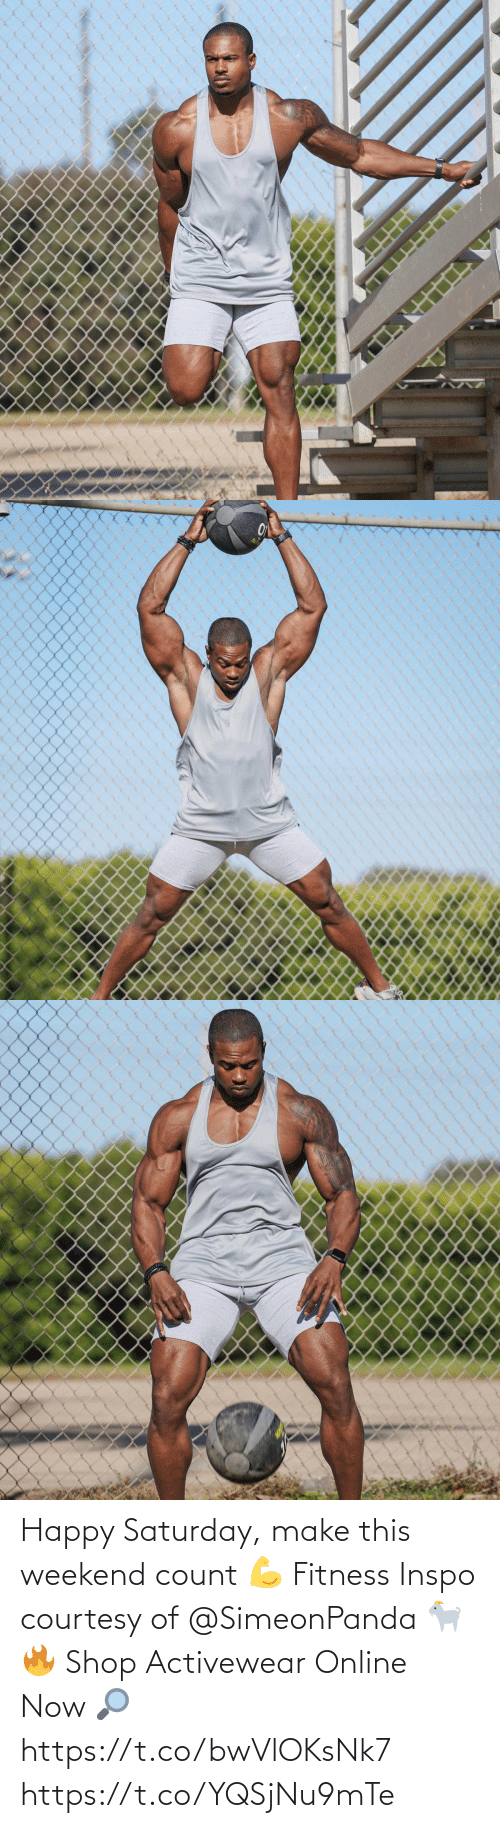 Count: Happy Saturday, make this weekend count 💪  Fitness Inspo courtesy of @SimeonPanda 🐐🔥  Shop Activewear Online Now 🔎 https://t.co/bwVlOKsNk7 https://t.co/YQSjNu9mTe